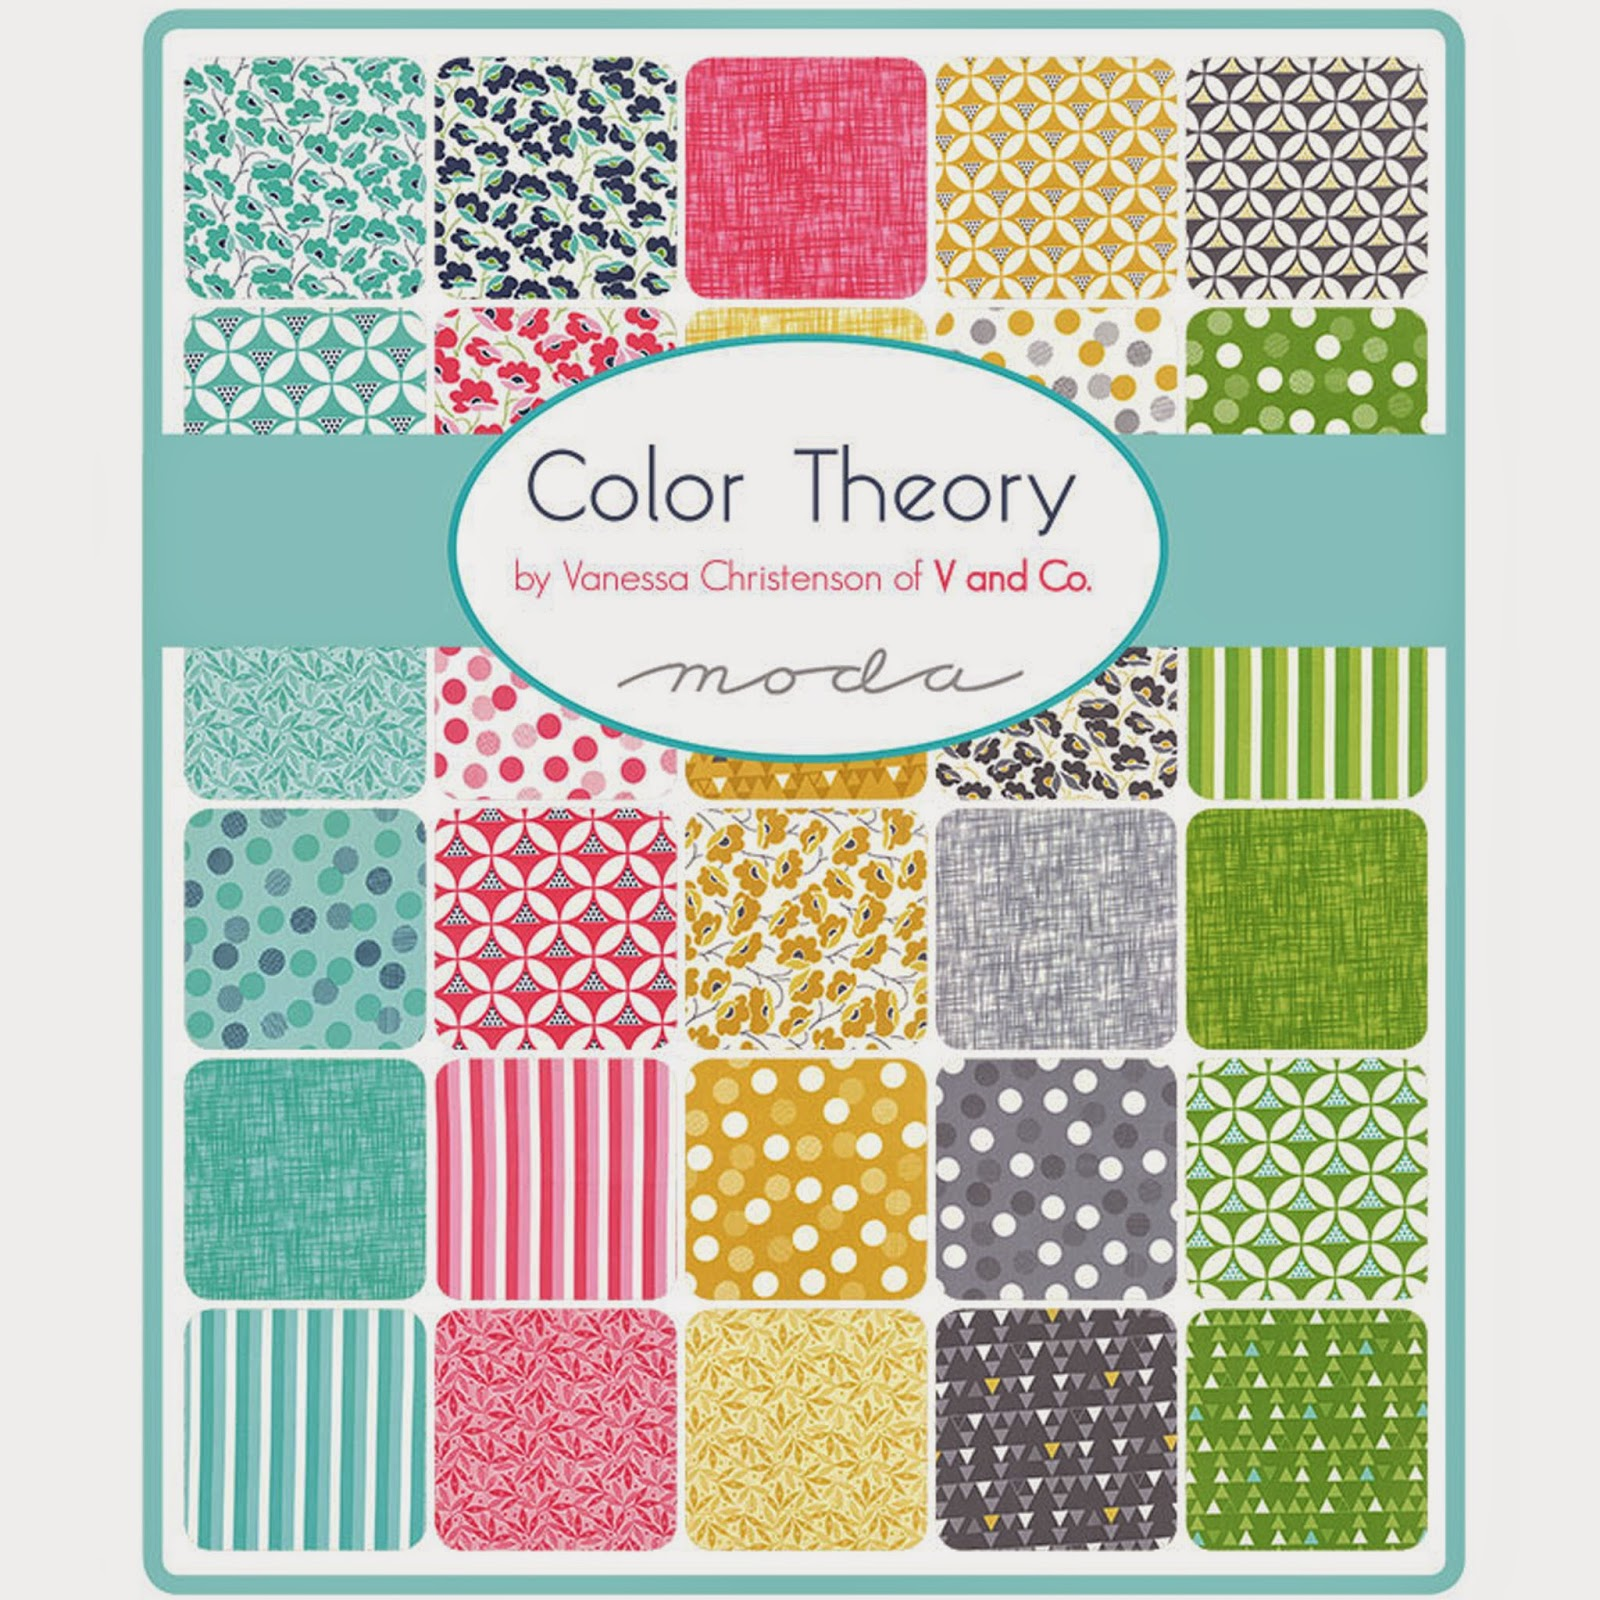 Moda COLOR THEORY Fabric by V and Co. for Moda Fabrics